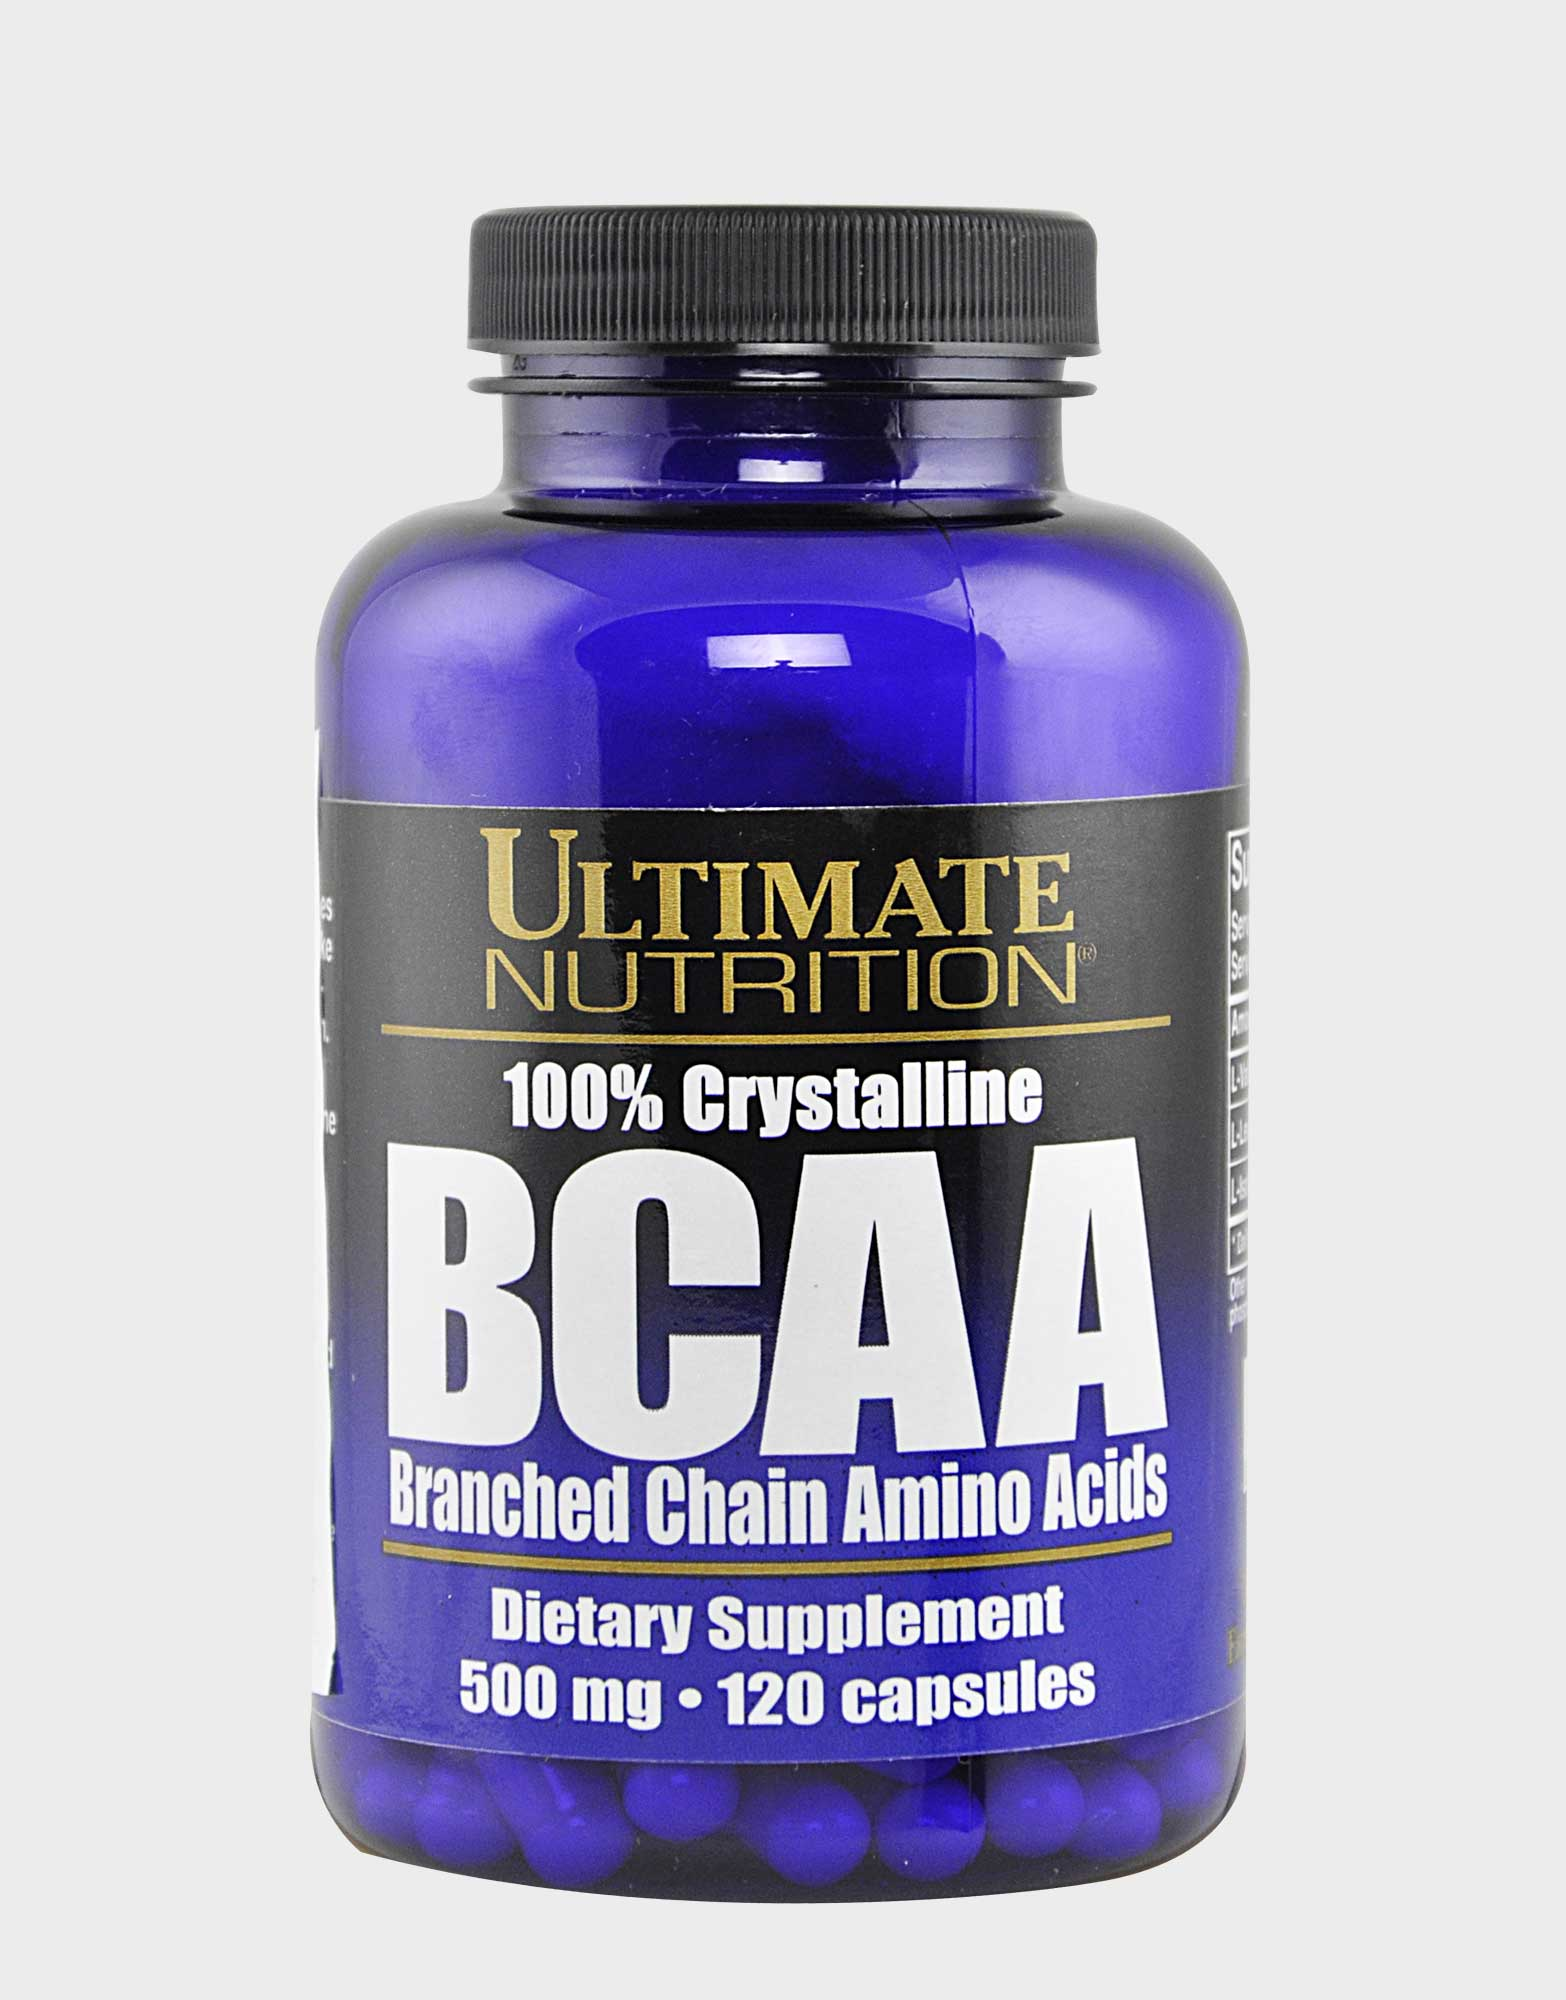 Branched Chain Amino Acids/500mg ULTIMATE NUTRITION